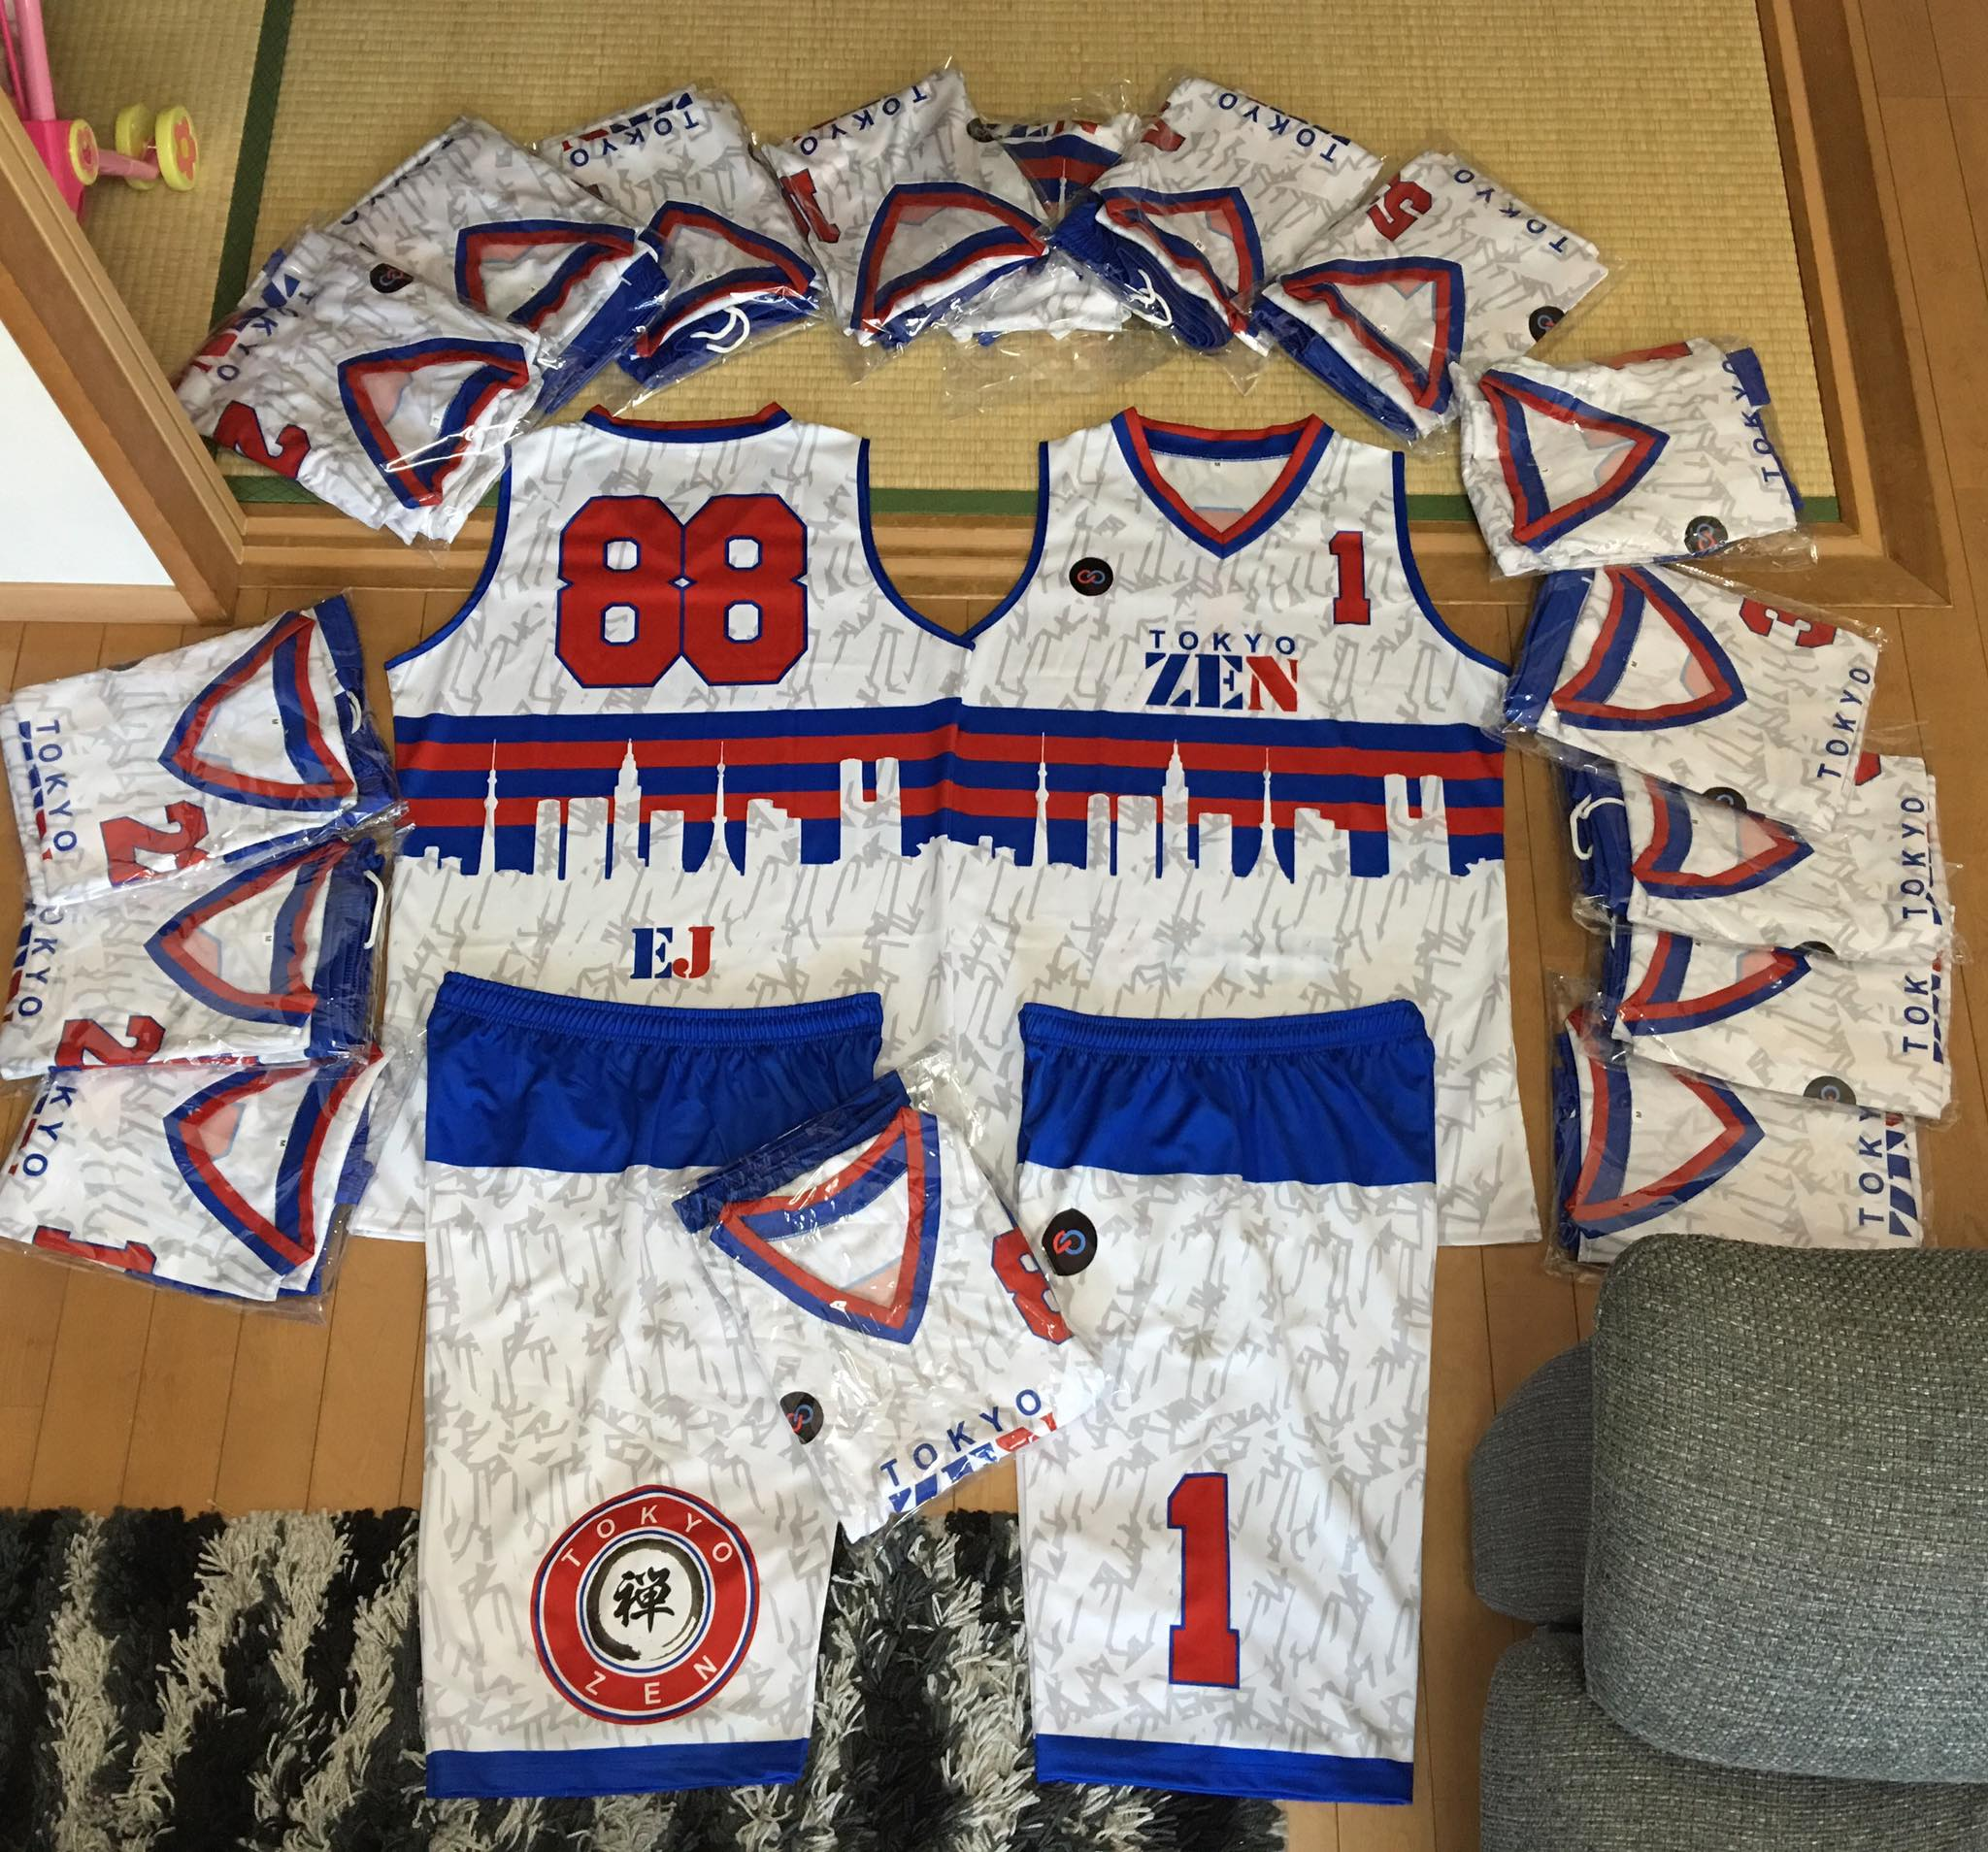 TOKYO ZEN white blue red Youth Basketball Uniforms jerseys and shorts